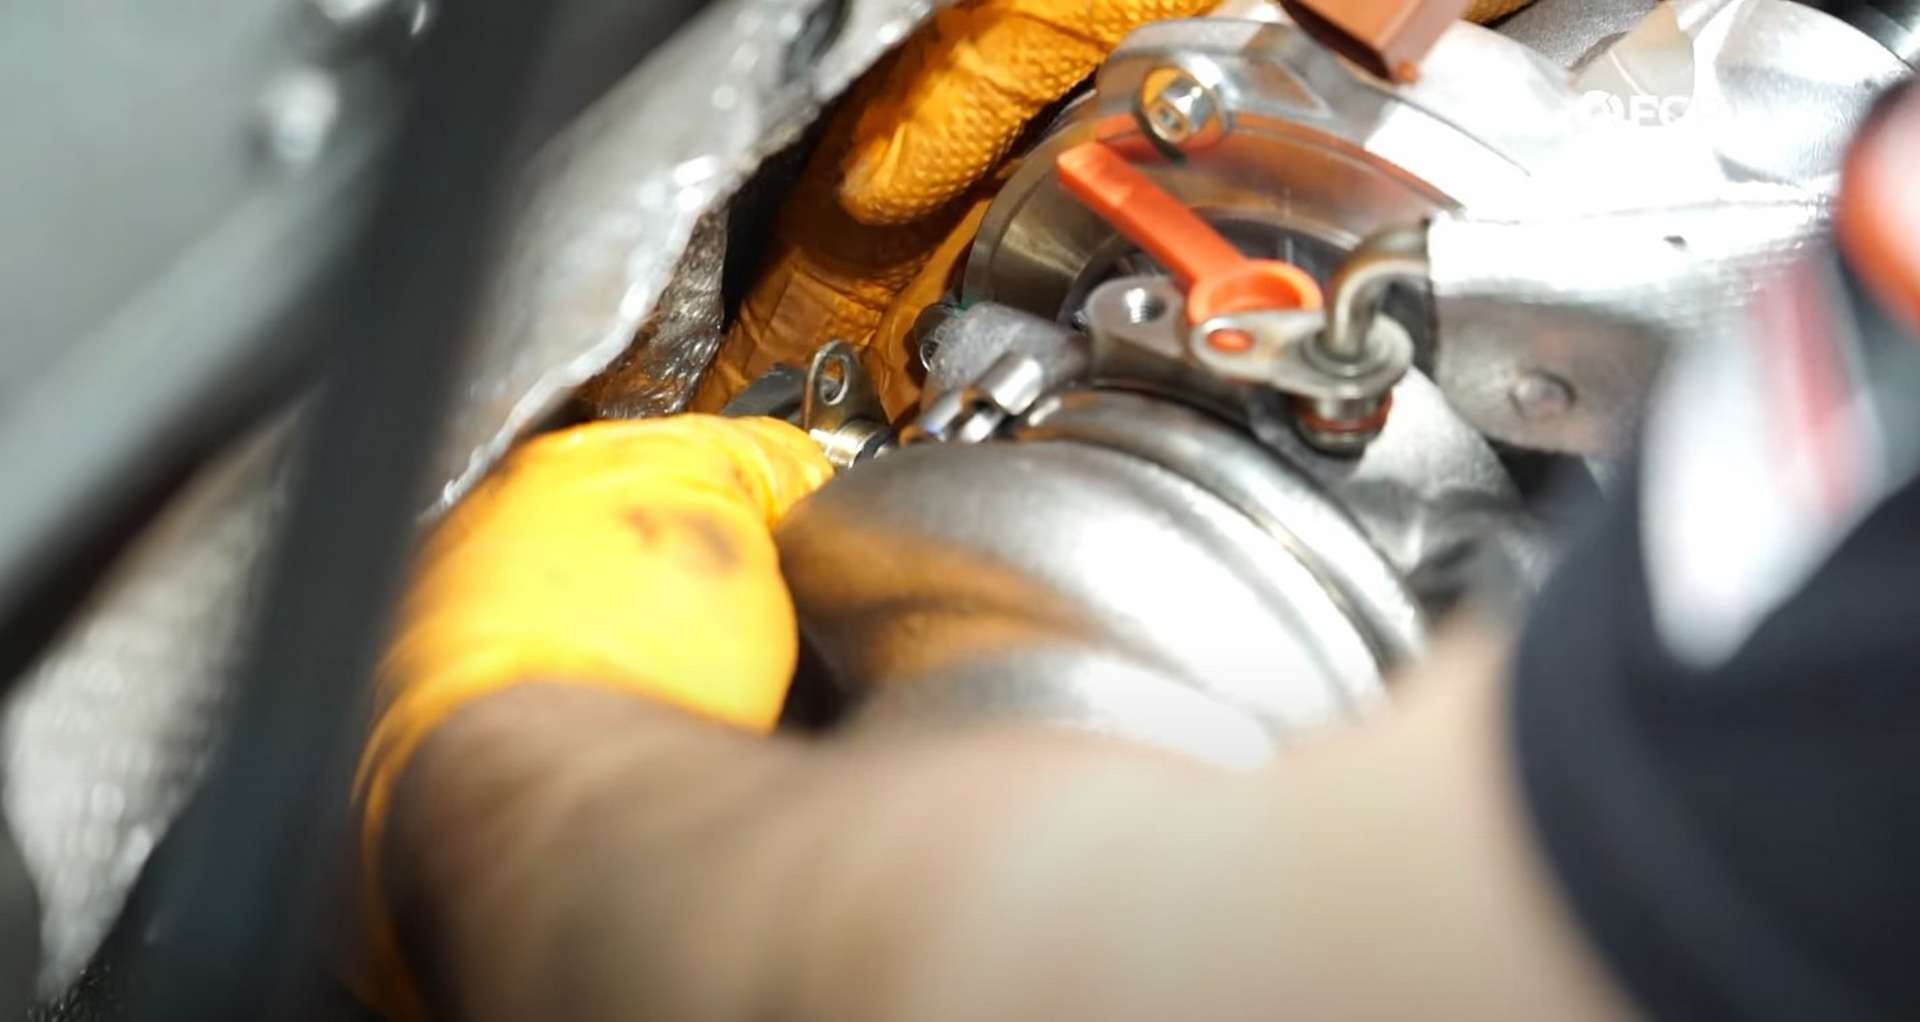 DIY MK7 VW GTI Turbocharger Upgrade installing the coolant feed line